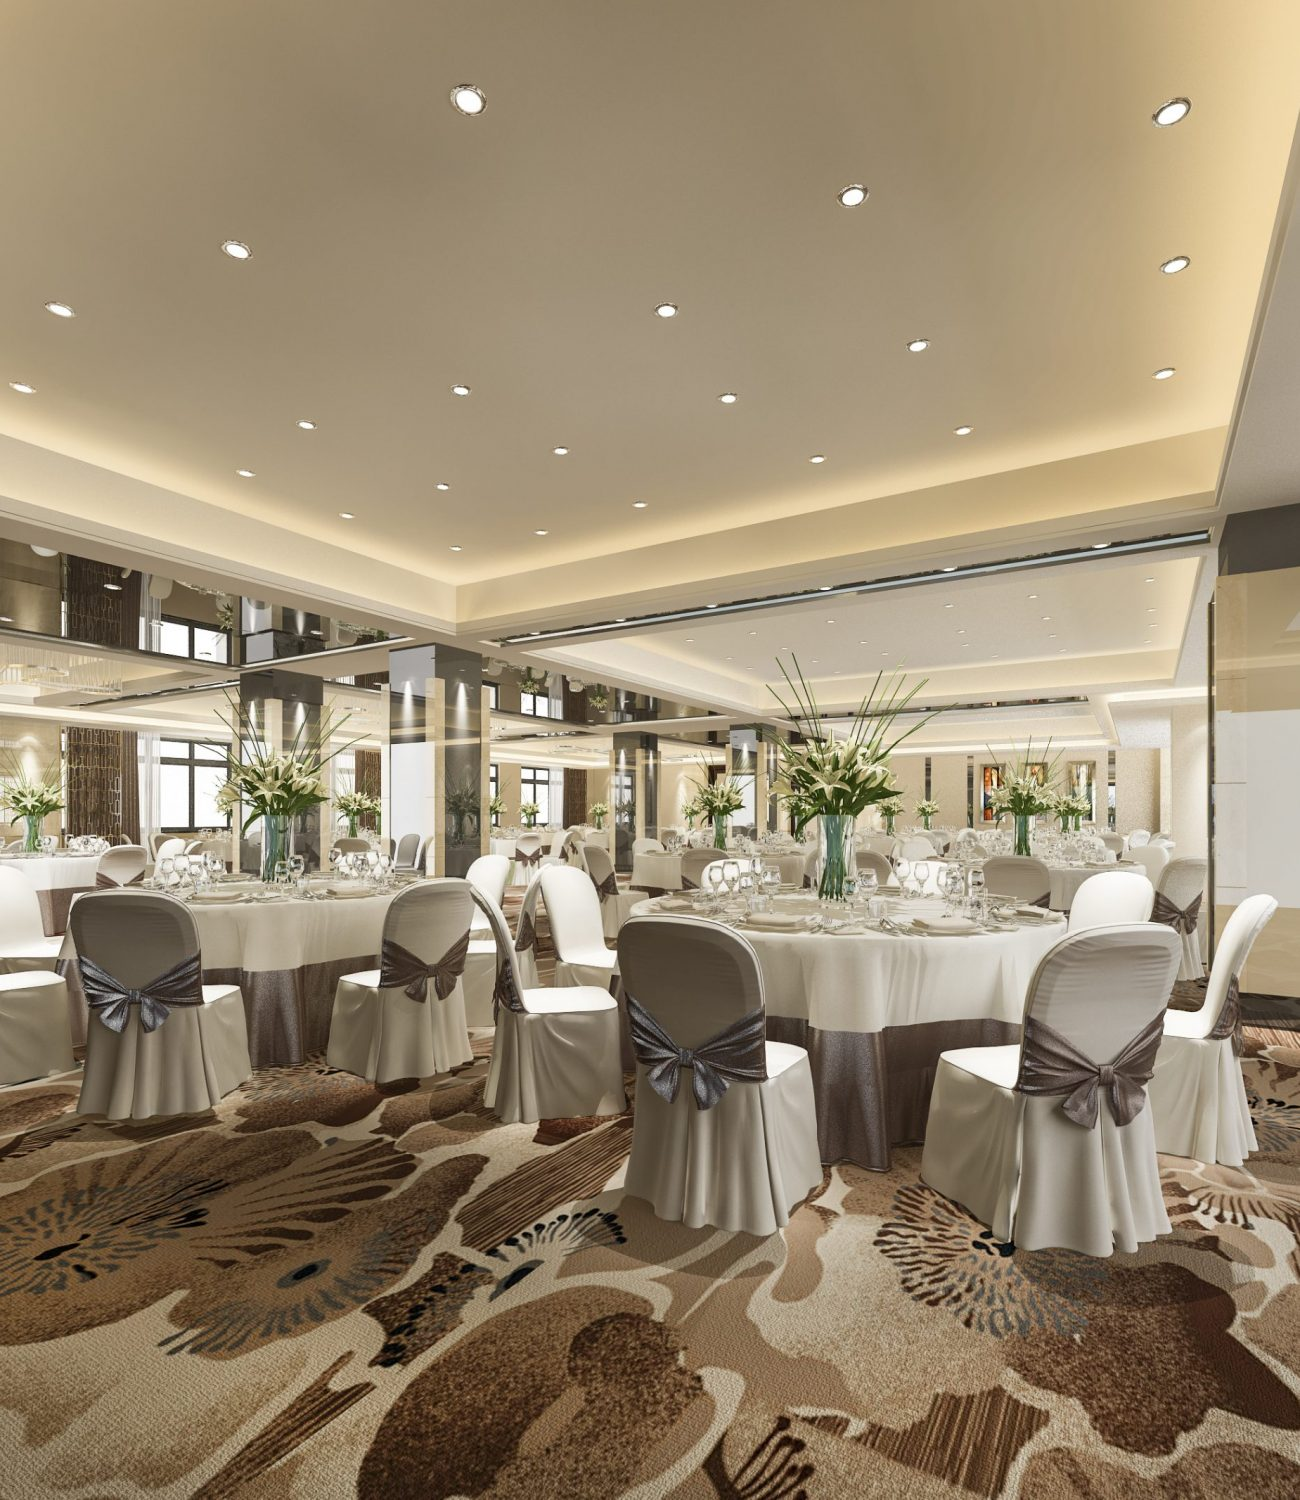 3d rendering seminar meeting and banquet hall room